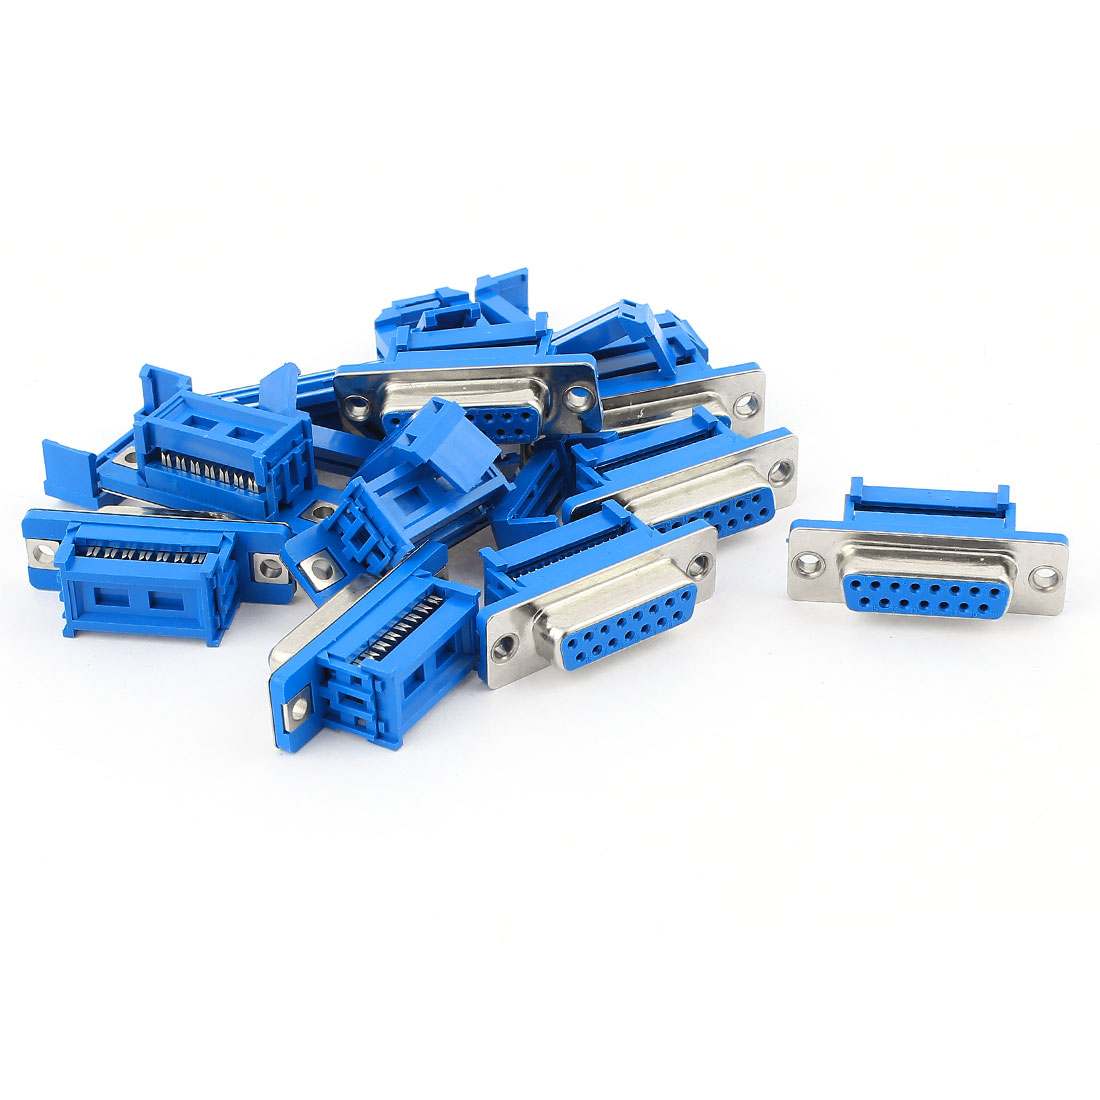 10pcs D-SUB DB15 15 Pin Female IDC Crimp Adapter Connector for Flat Ribbon Cable